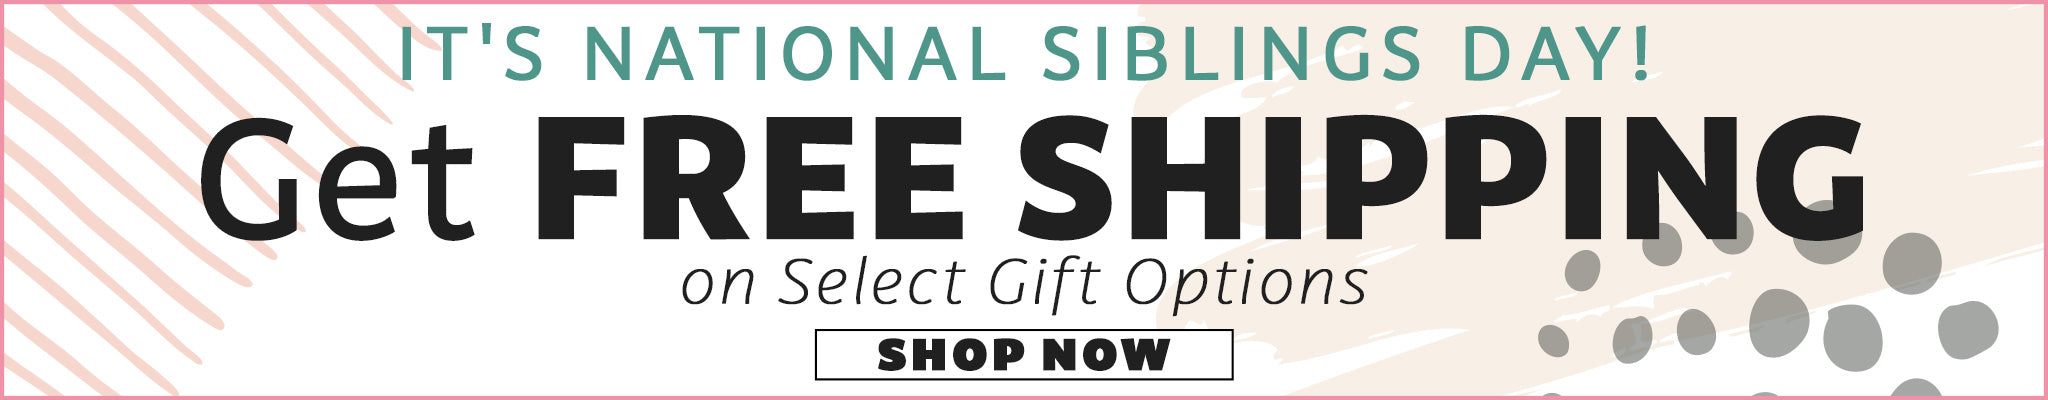 It's National Siblings Day! Get FREE Shipping on Select Gift Options | Shop Now